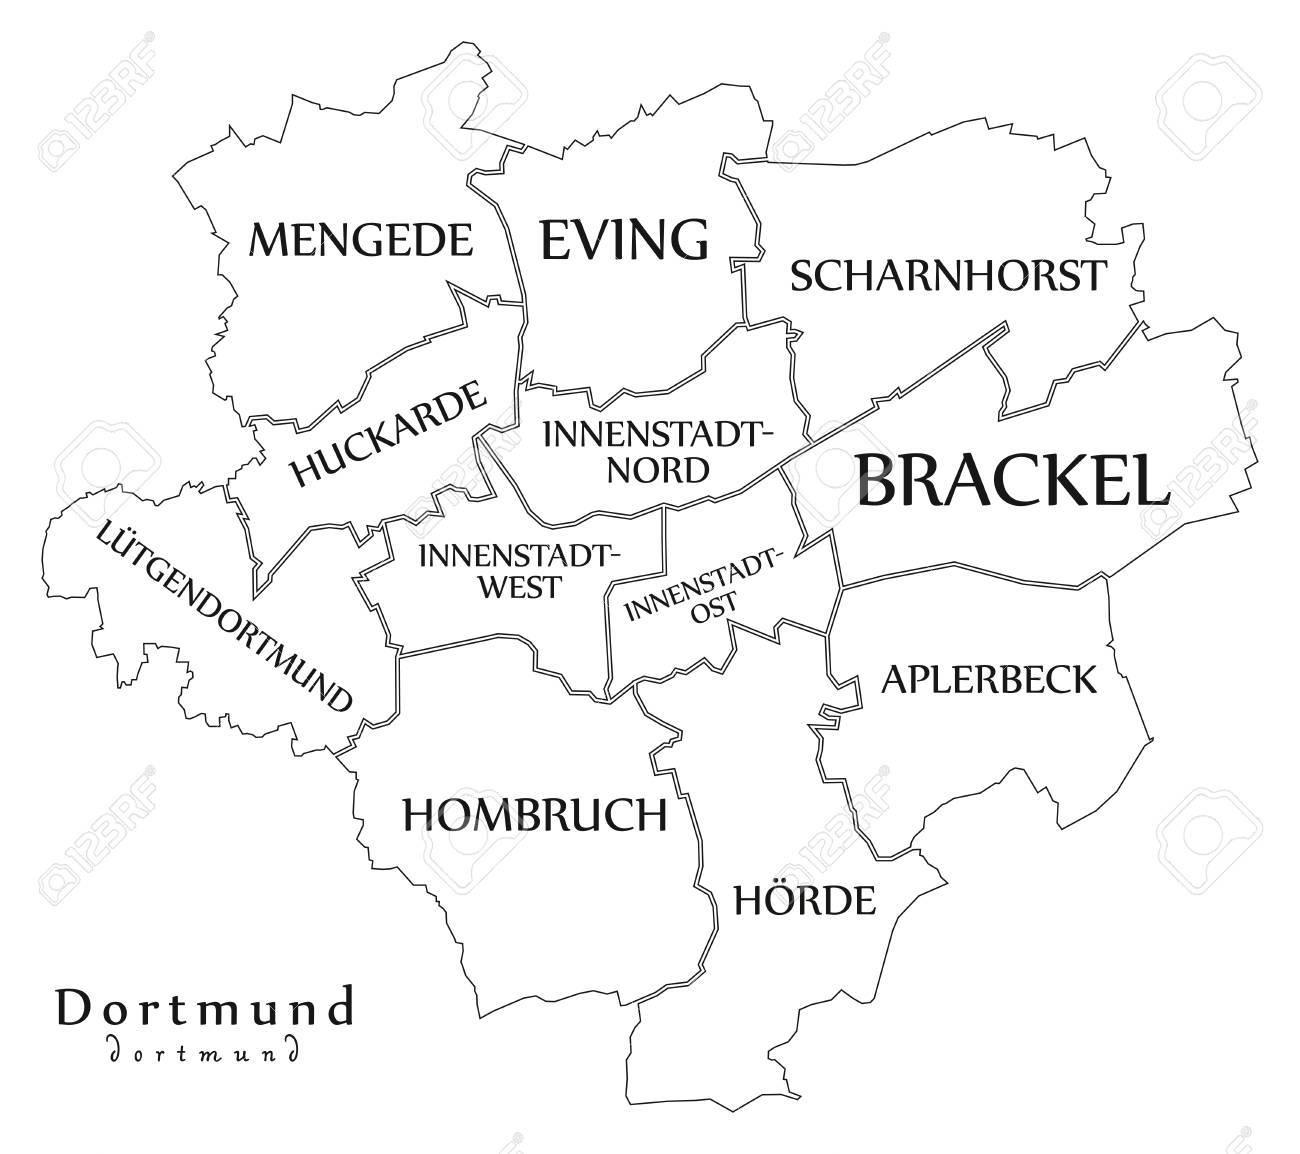 modern city map dortmund city of germany with boroughs and titles de outline map stock